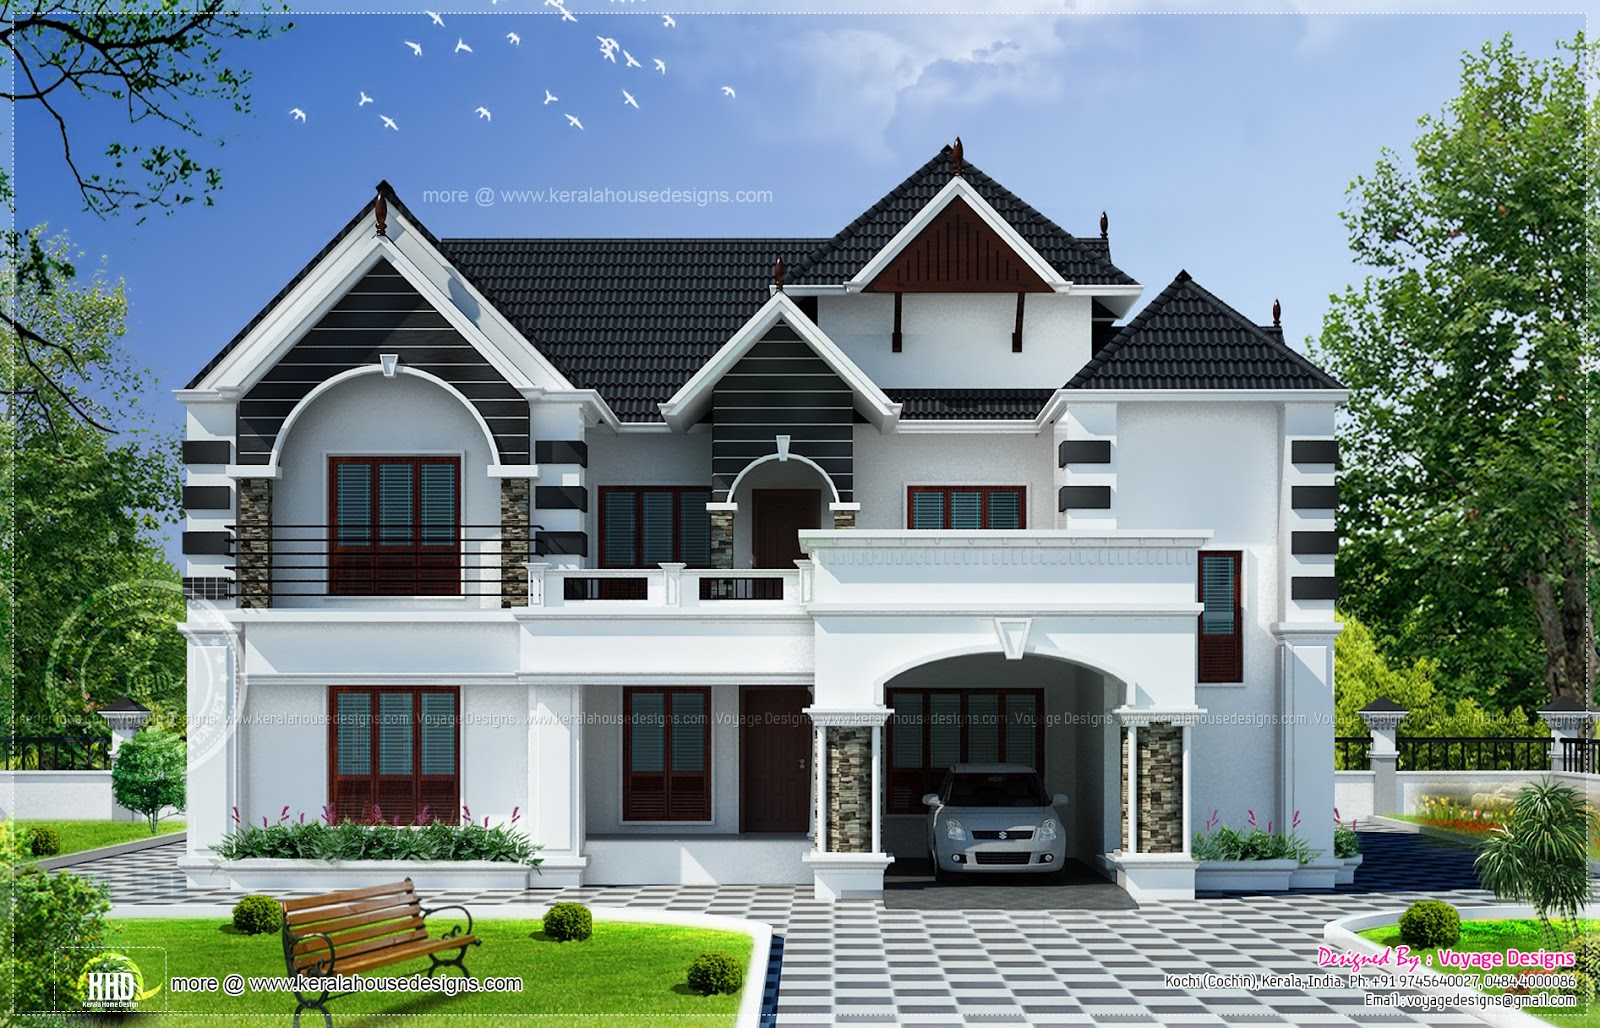 4 bedroom colonial style house kerala home design and for 4 bedroom house plans kerala style architect